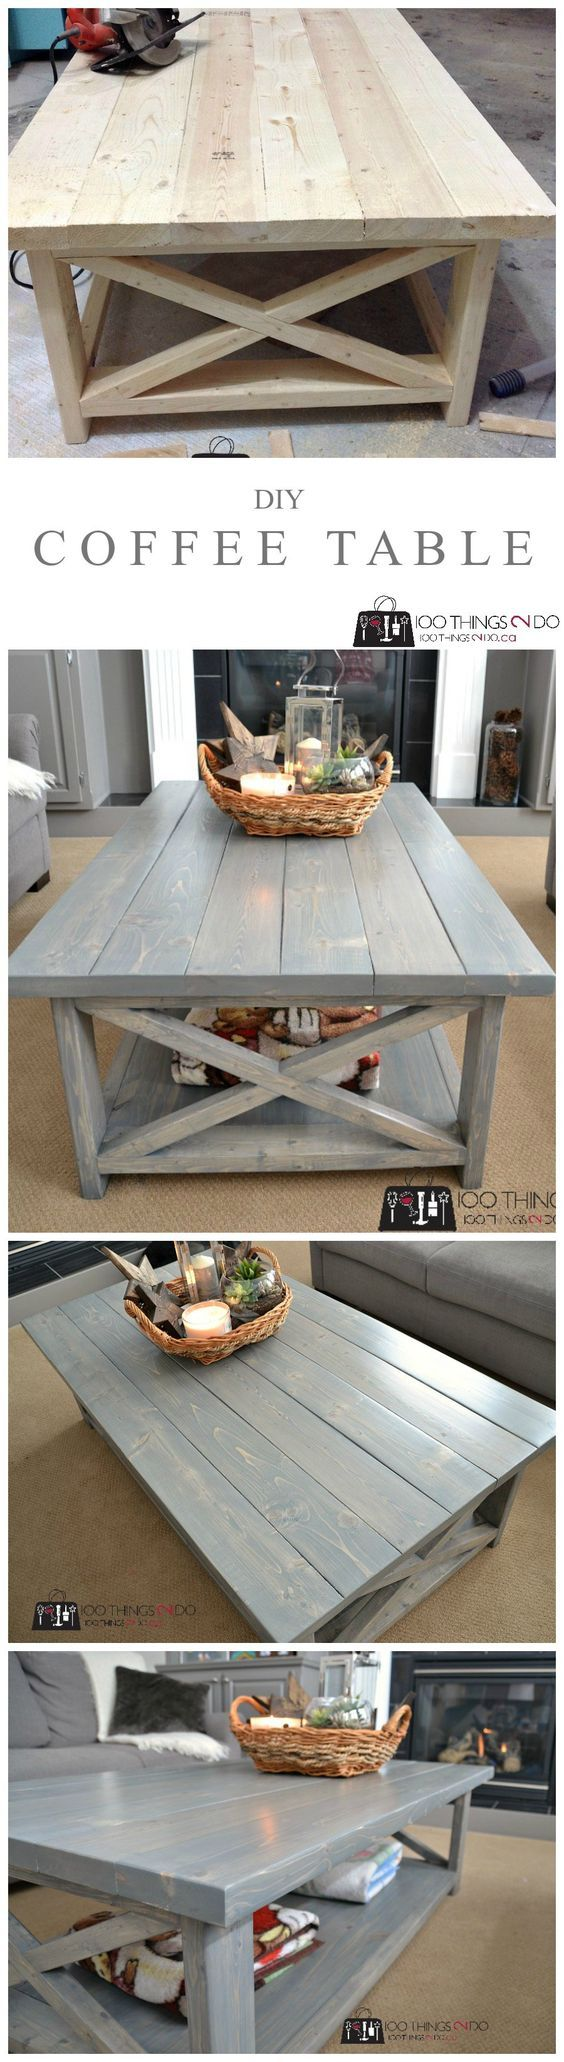 15 easy diy reclaimed wood projects - homelovr